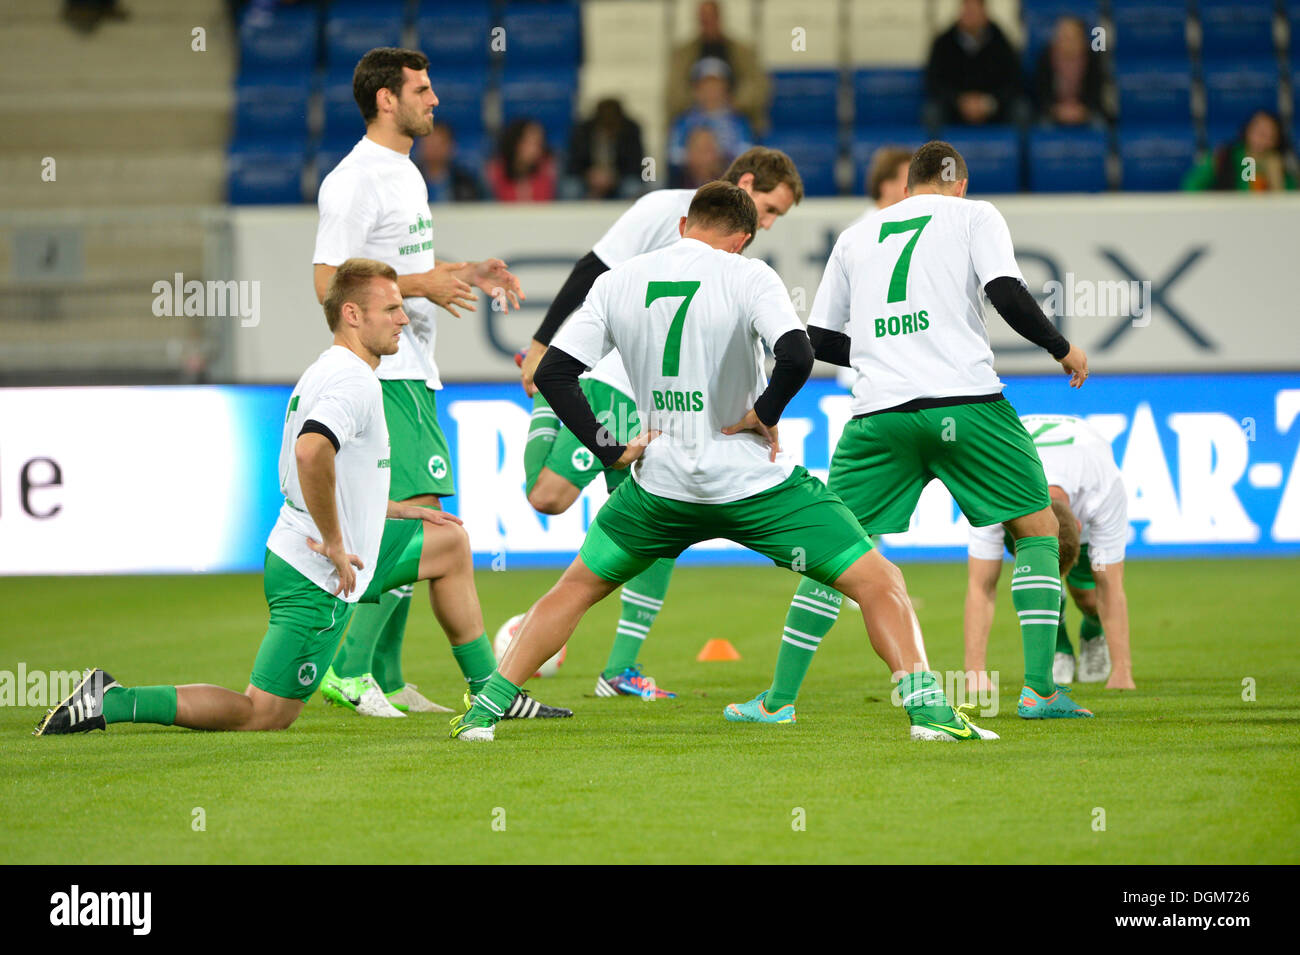 Team SpVgg Greuther Furth during warm-up wearing shirts of Boris VUKCEVIC, TSG 1899 Hoffenheim, because of his accident, Wirsol - Stock Image